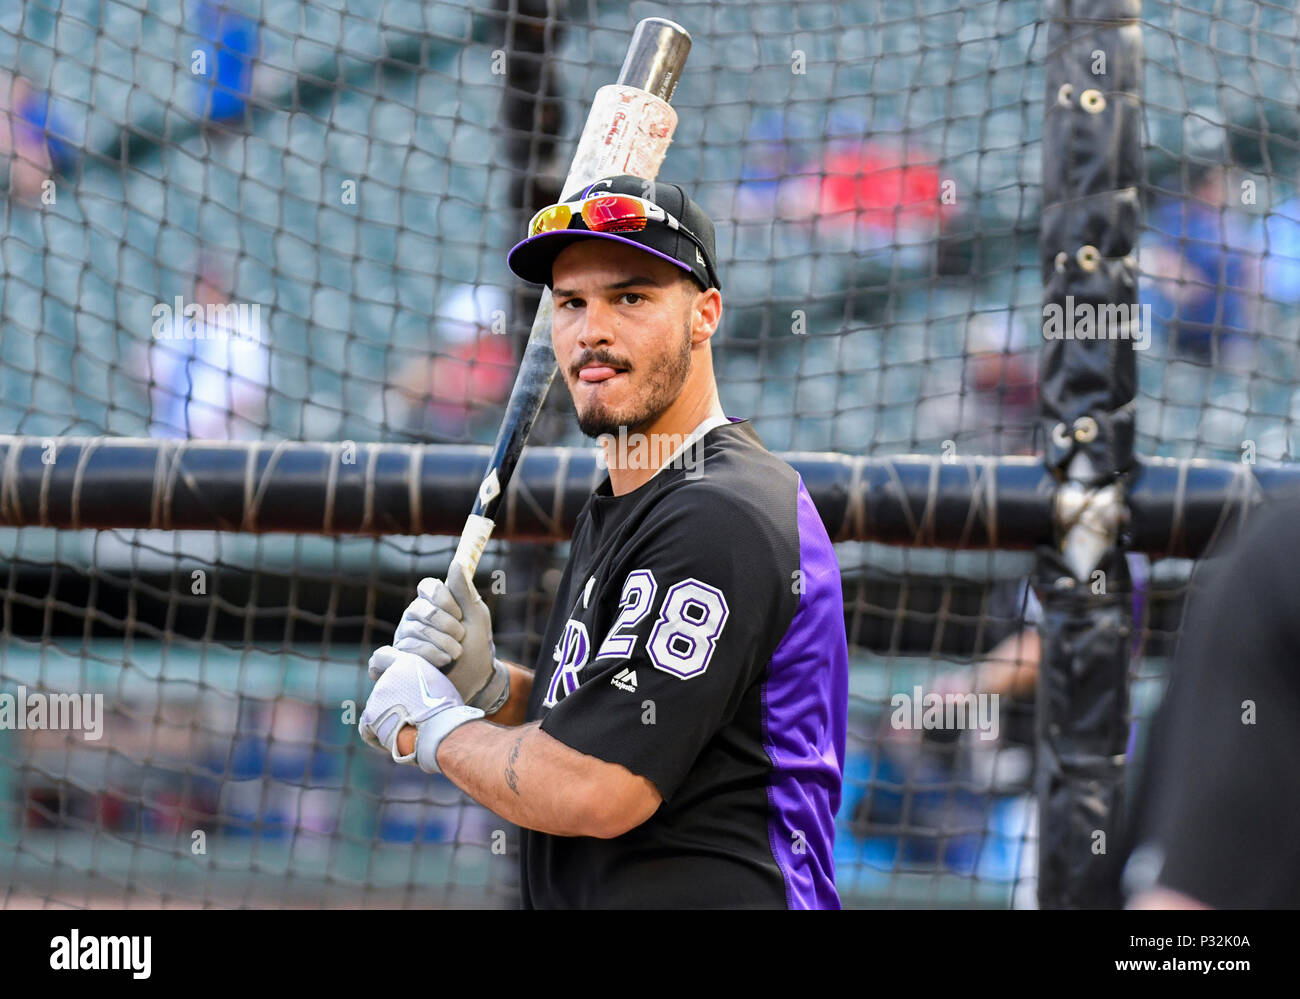 6292e8d73 Jun 15, 2018: Colorado Rockies third baseman Nolan Arenado #28 during batting  practice before an MLB game between the Colorado Rockies and the Texas  Rangers ...